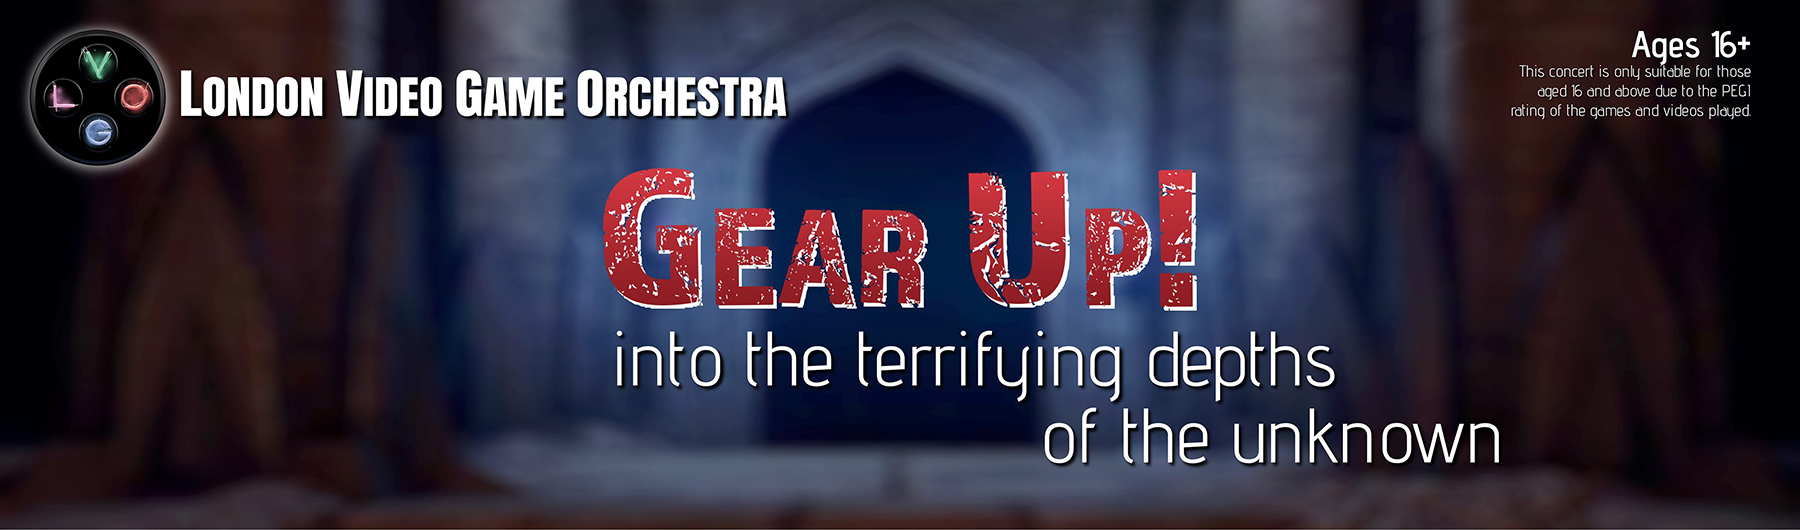 LVGO October Concert  - Gear Up! Into the terrifying depths of the unknown